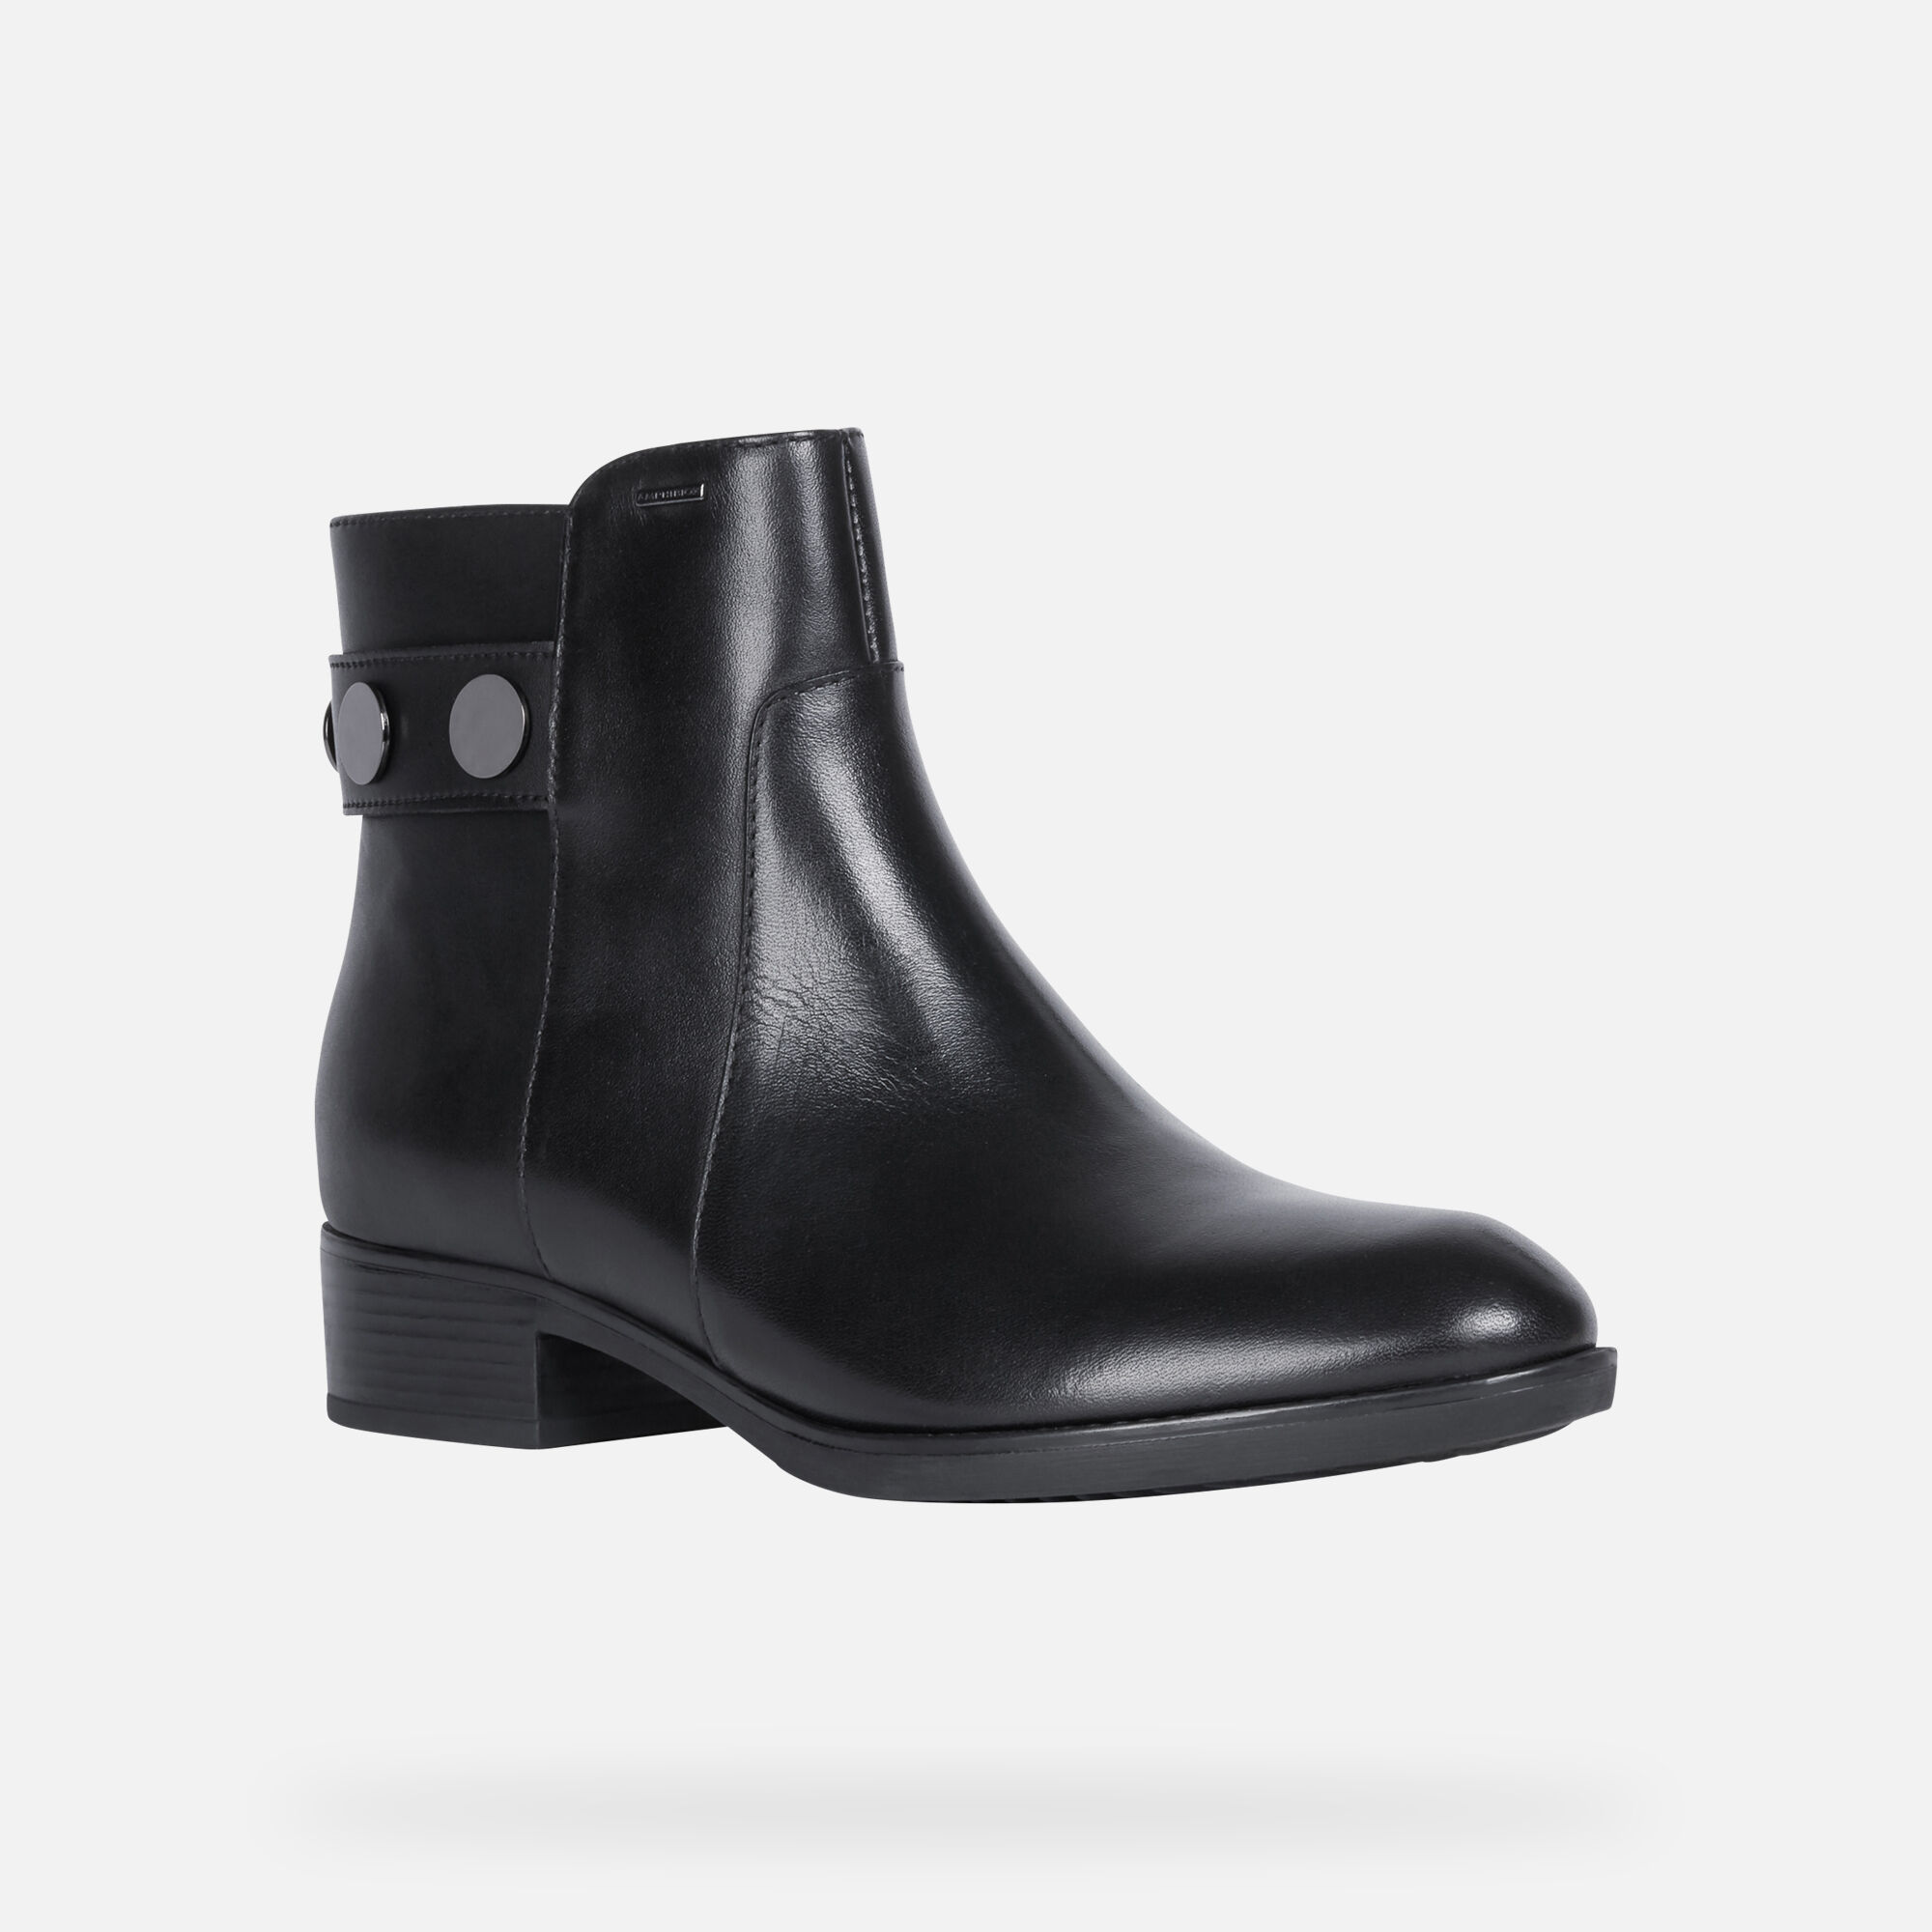 Geox FELICITY NP ABX Woman: Black Ankle Boots | Geox FW1920